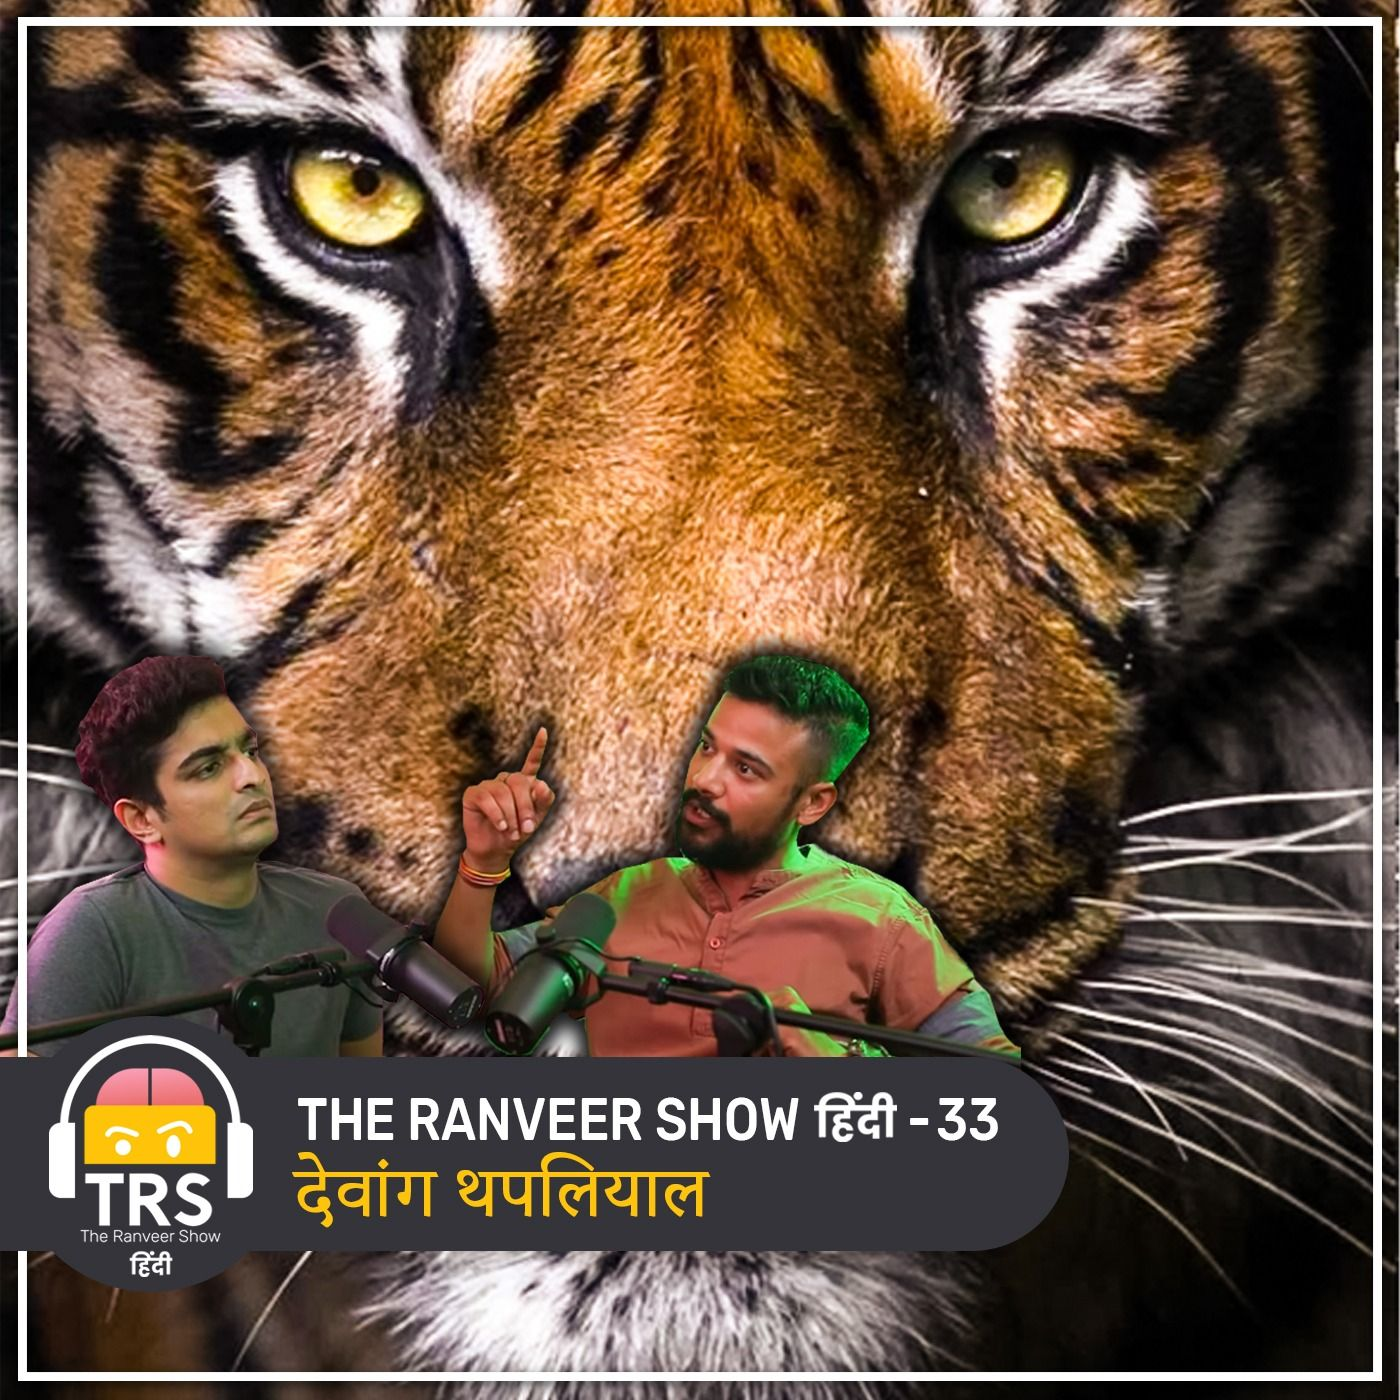 His SCARY STORIES Will Change You ft. Devang Thapliyal | The Ranveer Show हिंदी 33